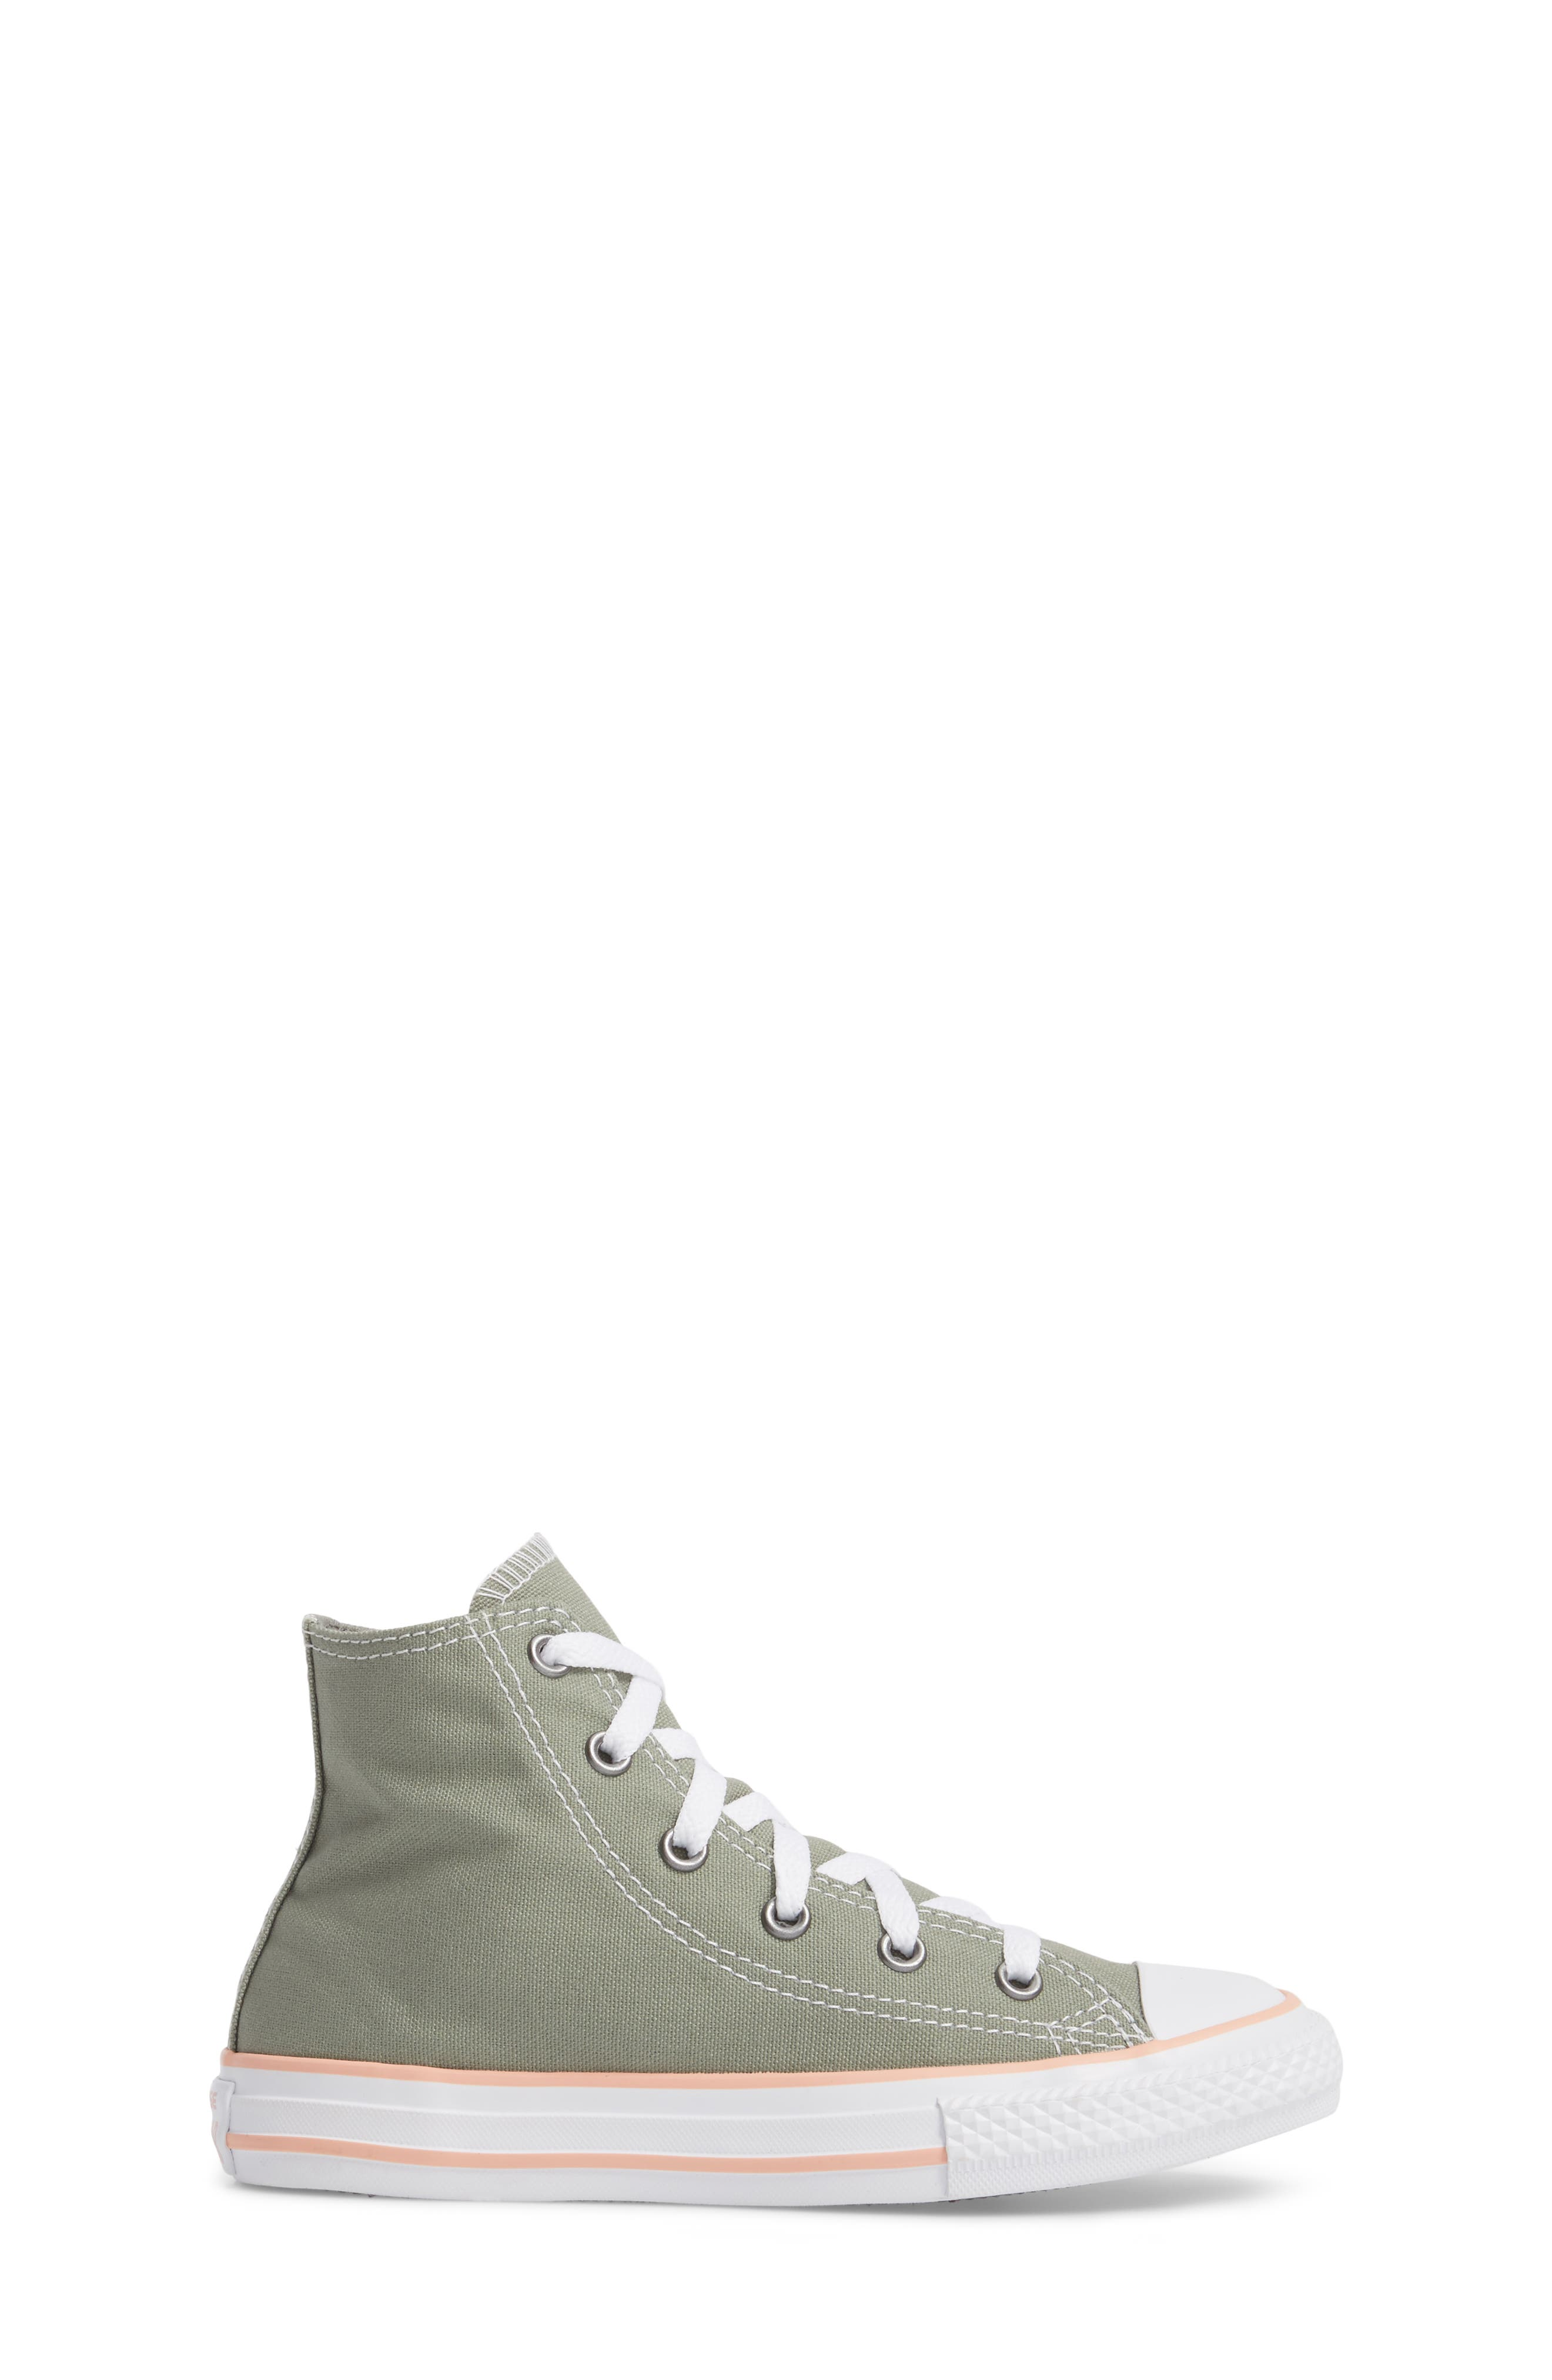 Alternate Image 3  - Converse Chuck Taylor® All Star® High Top Sneaker (Baby, Walker, Toddler, Little Kid & Big Kid)